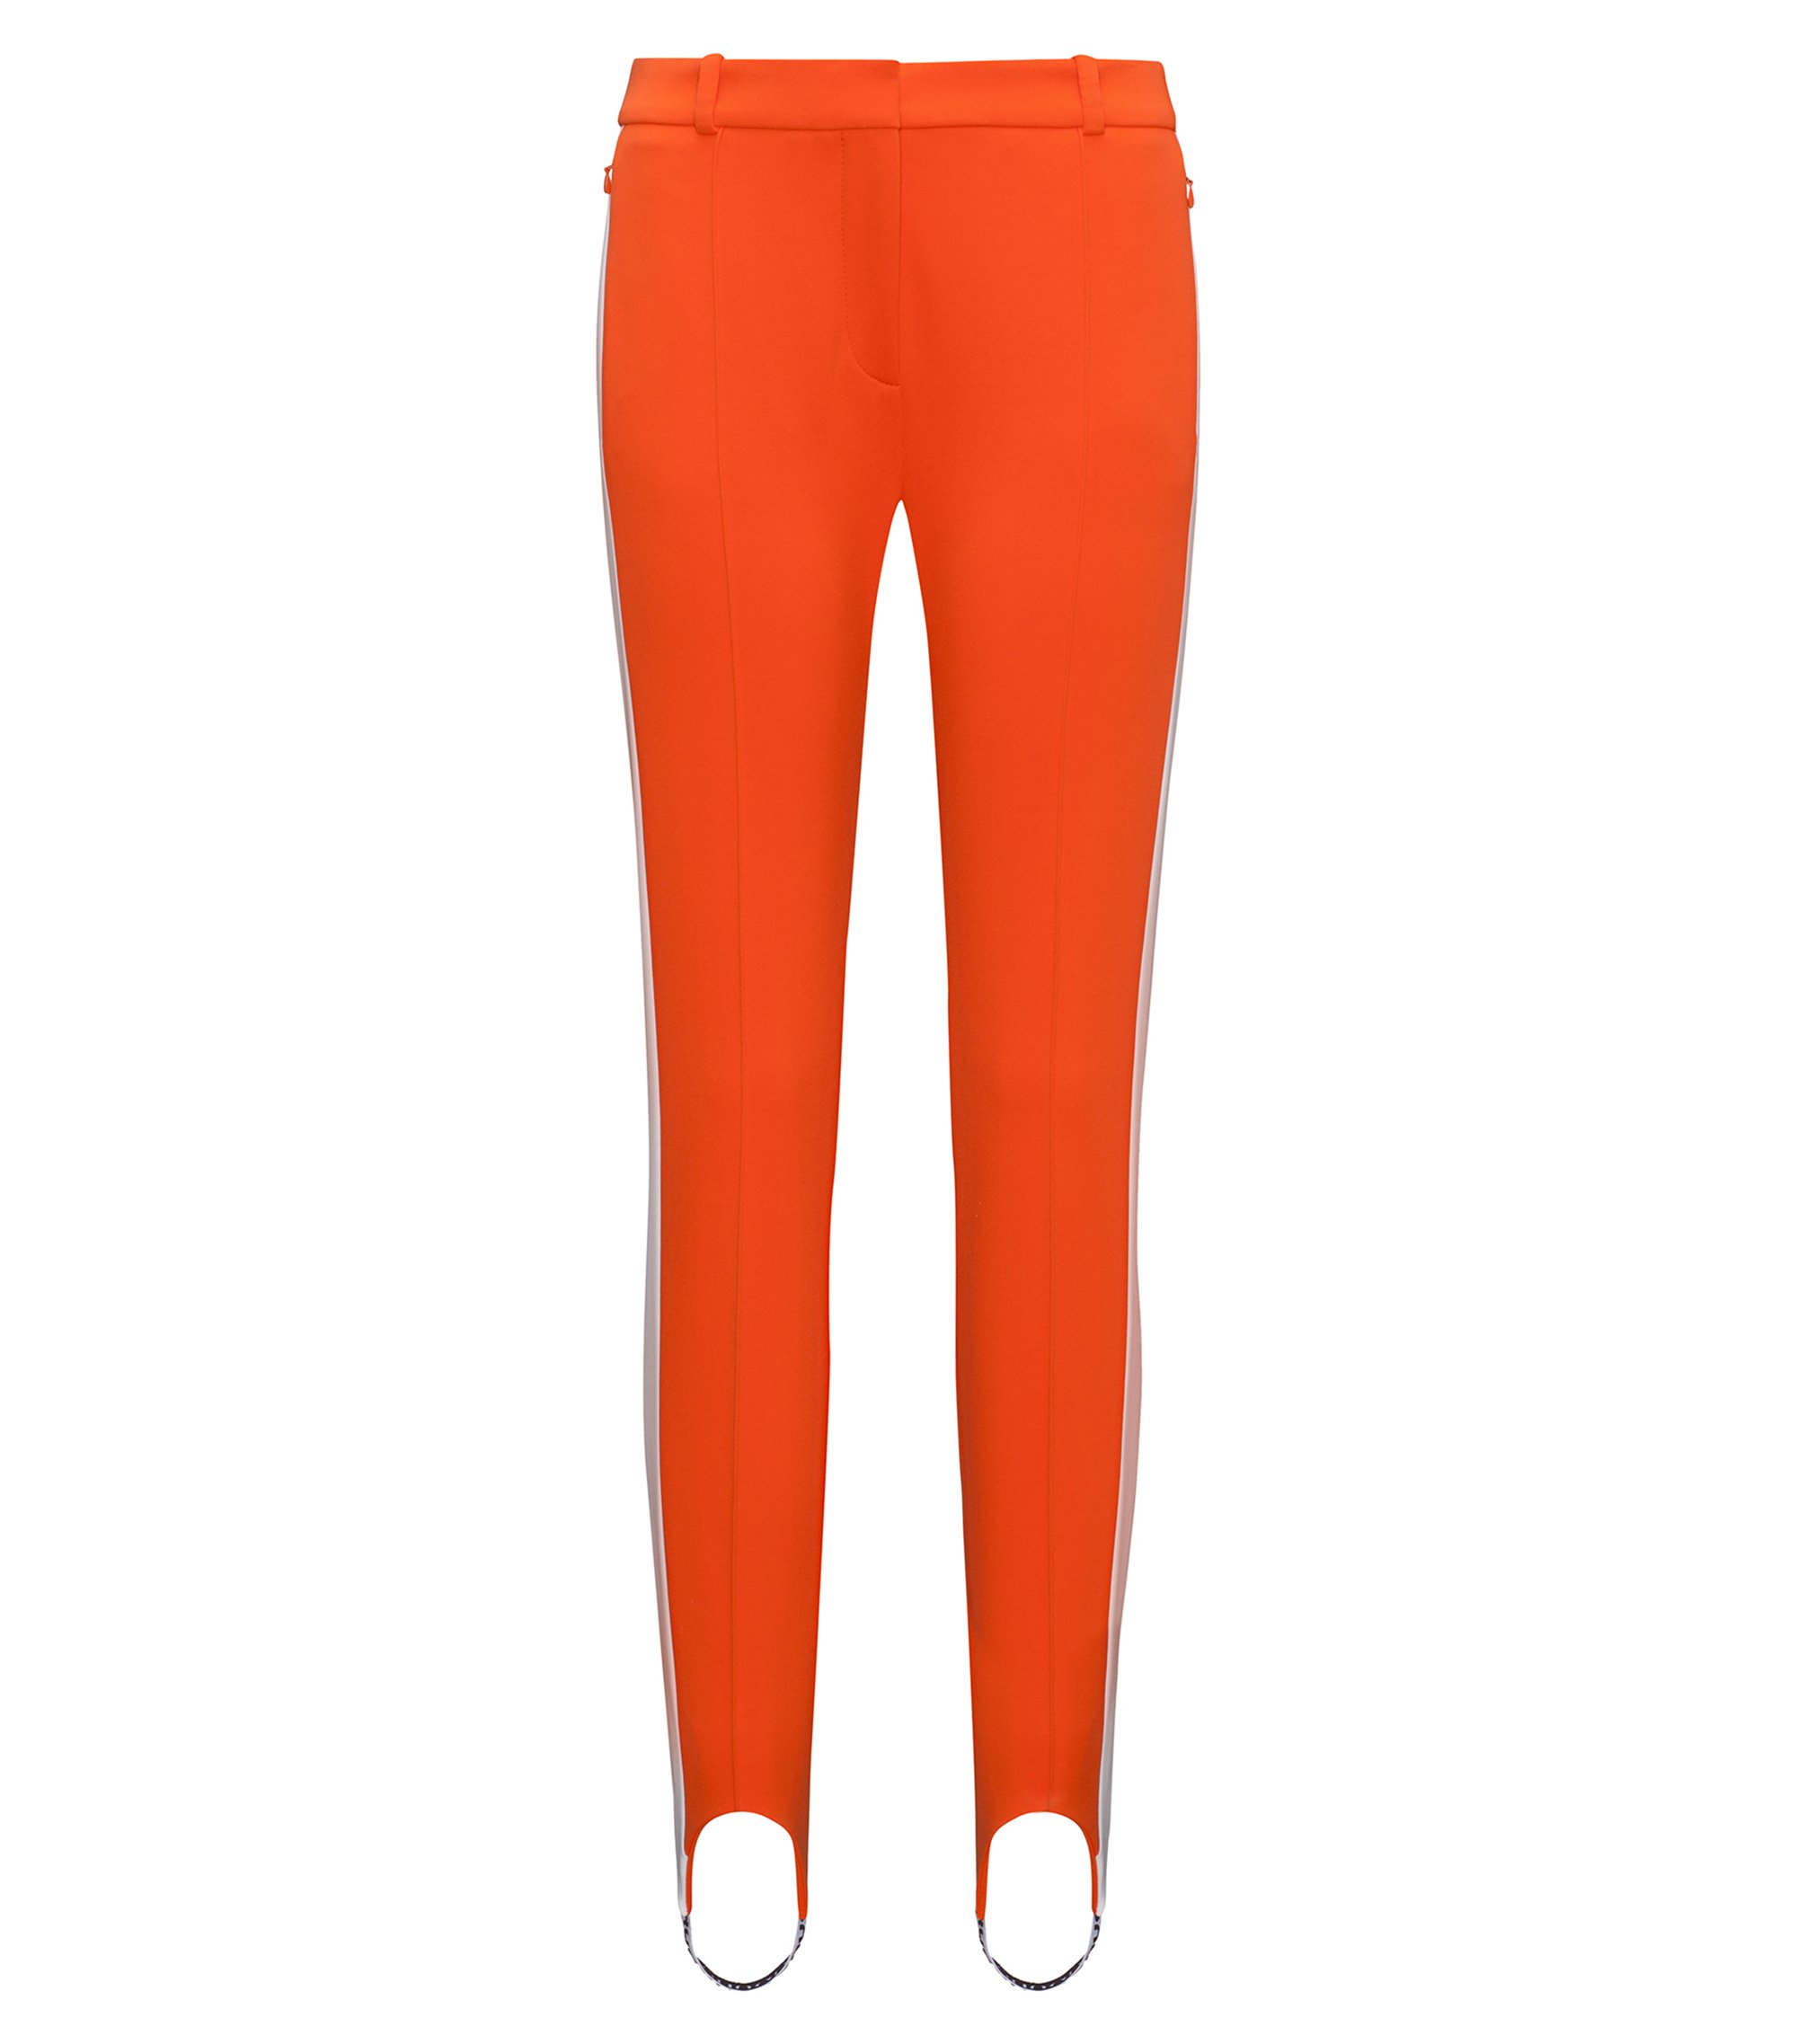 Pantalon fuseau Slim Fit en jersey stretch à rayure latérale, Orange